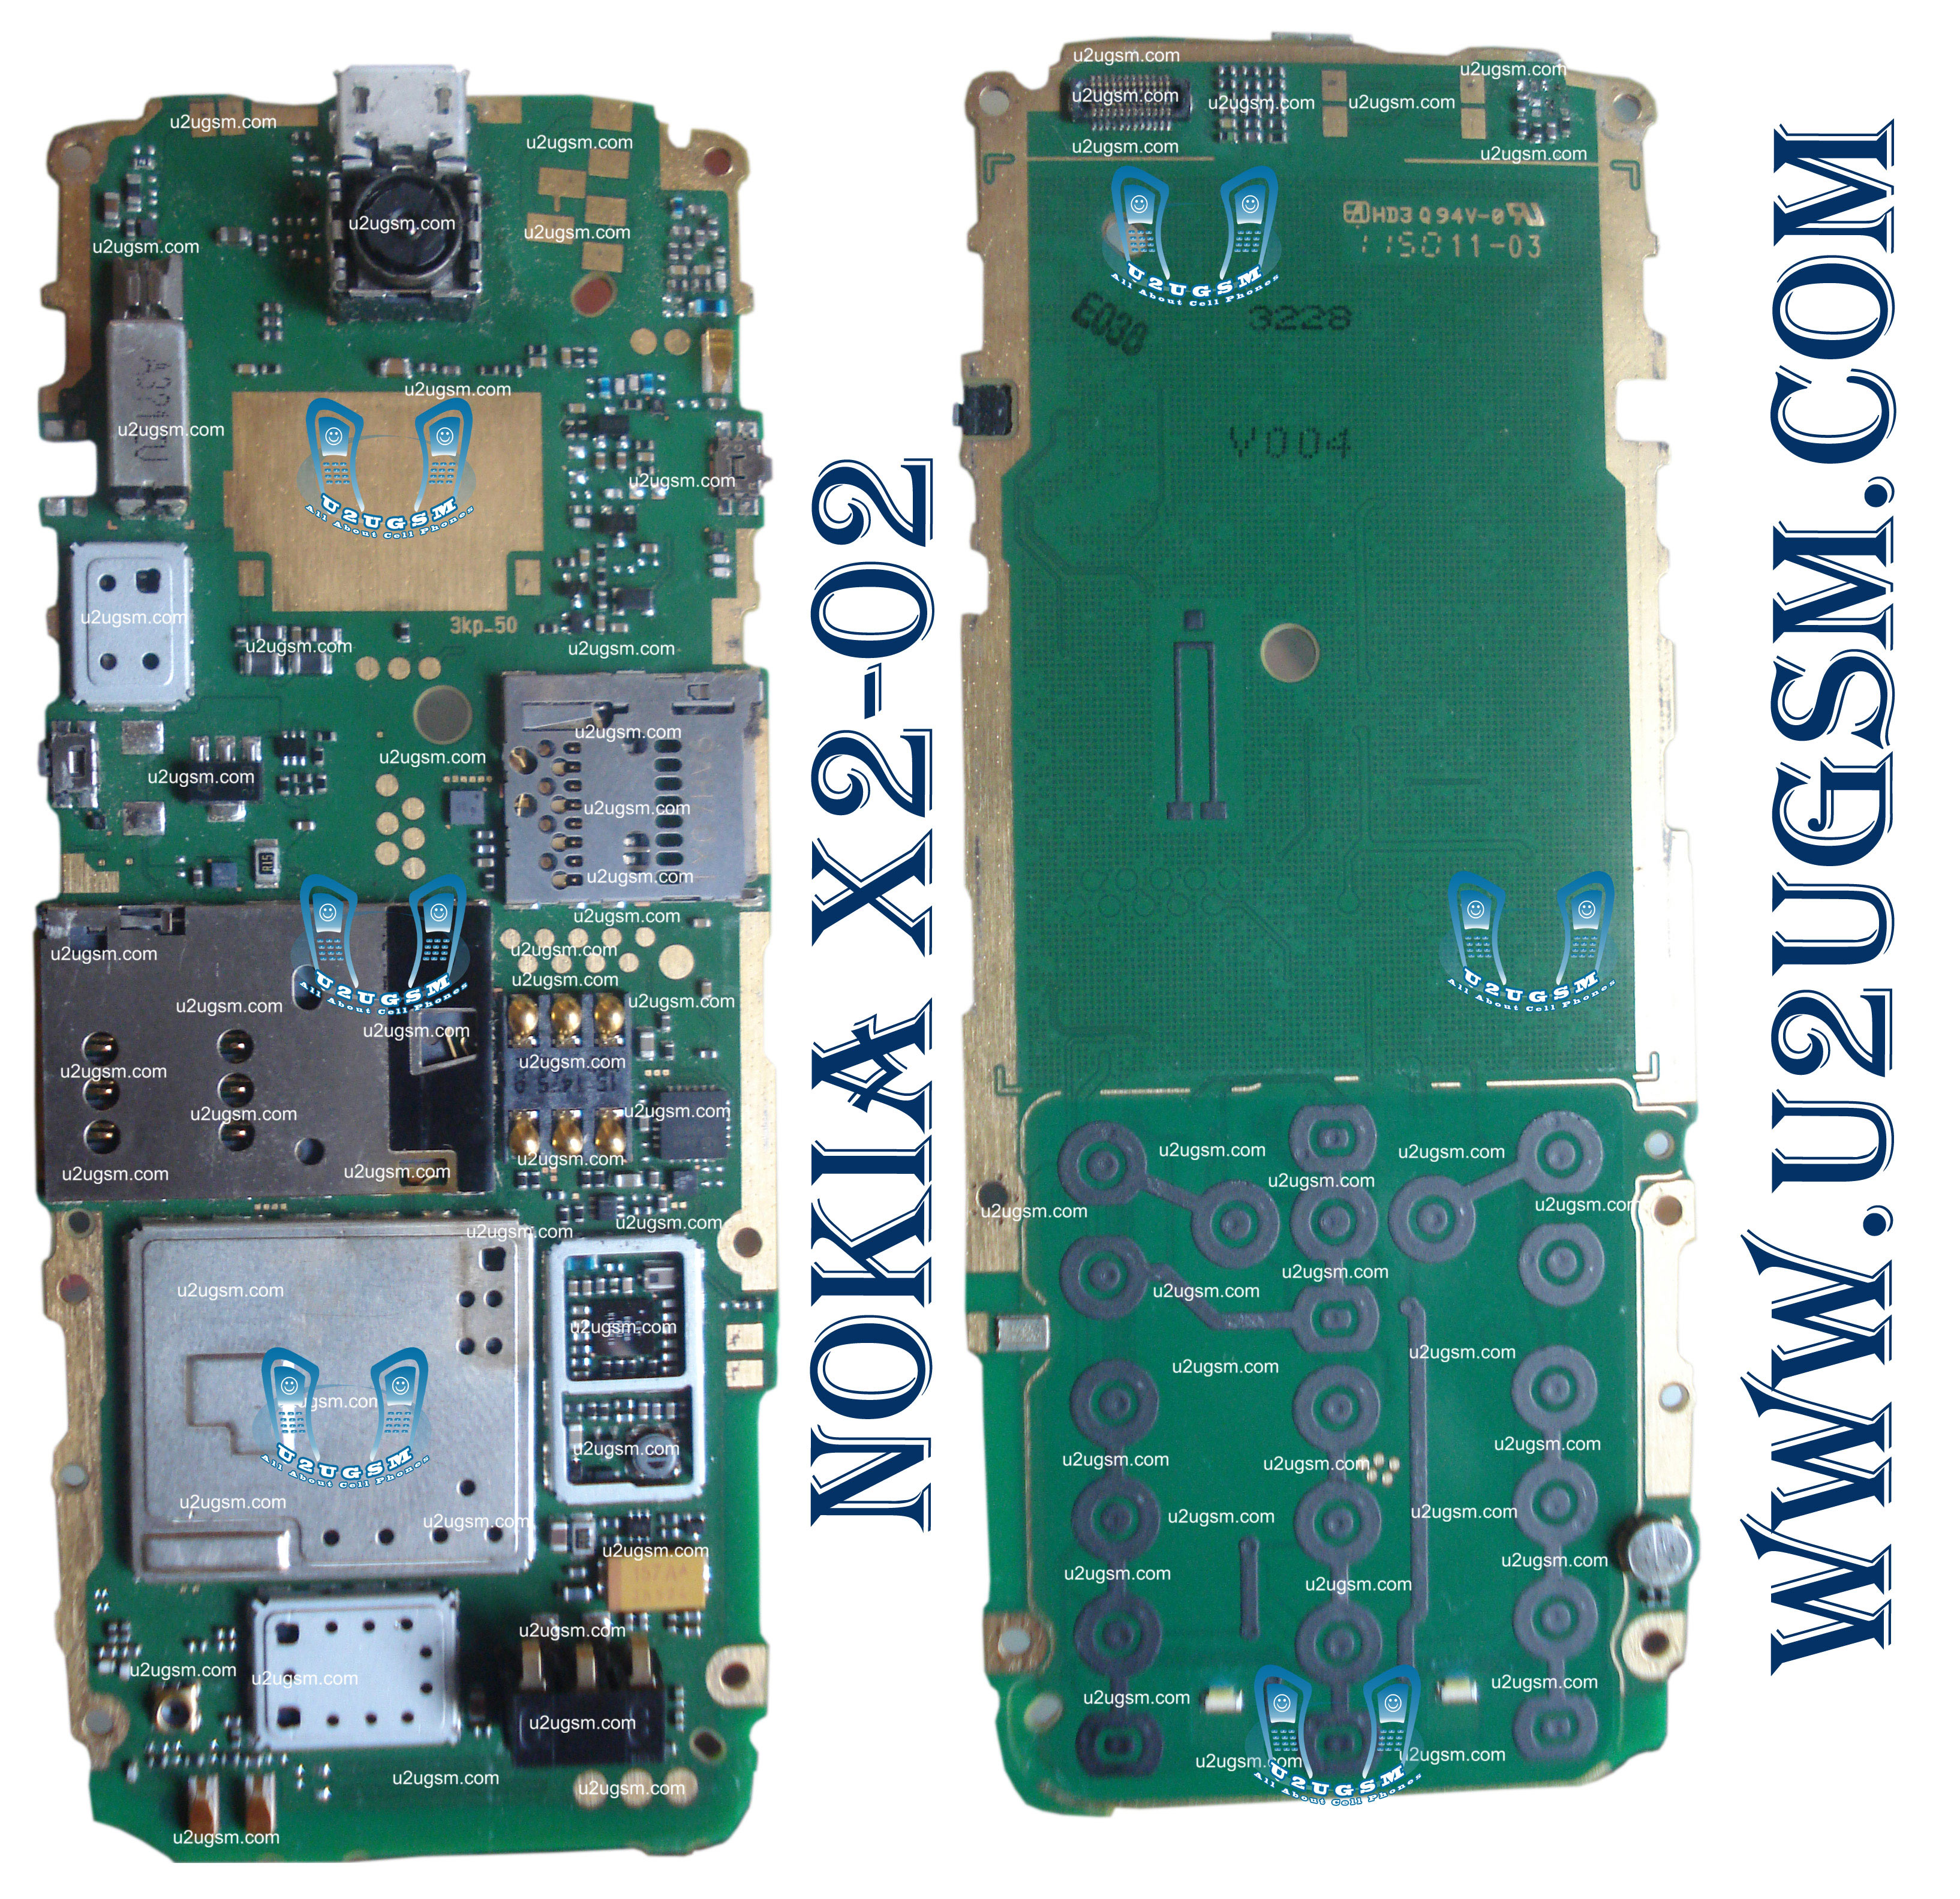 nokia x2 02 full pcb diagram mother board layout